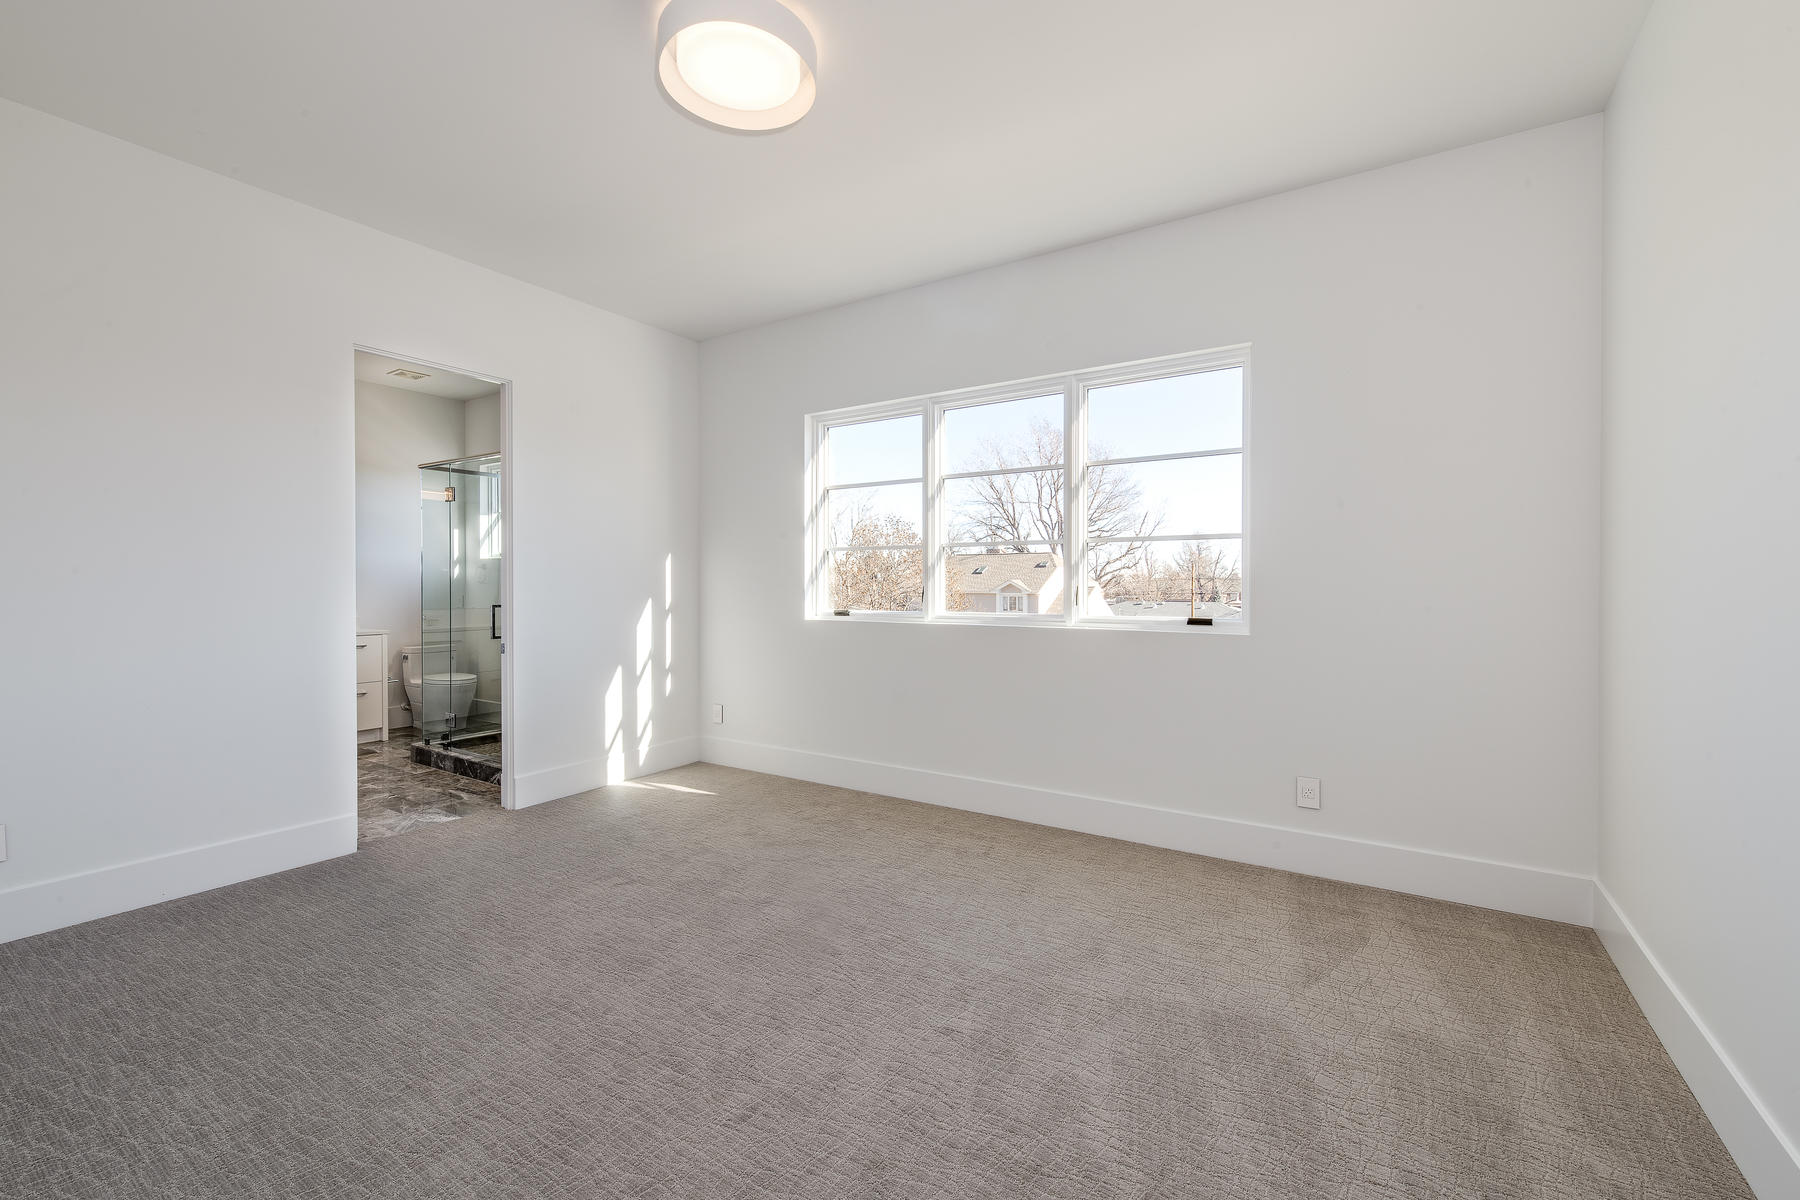 Additional photo for property listing at 1 North Fairfax Street 1 North Fairfax Street Denver, Colorado 80246 United States